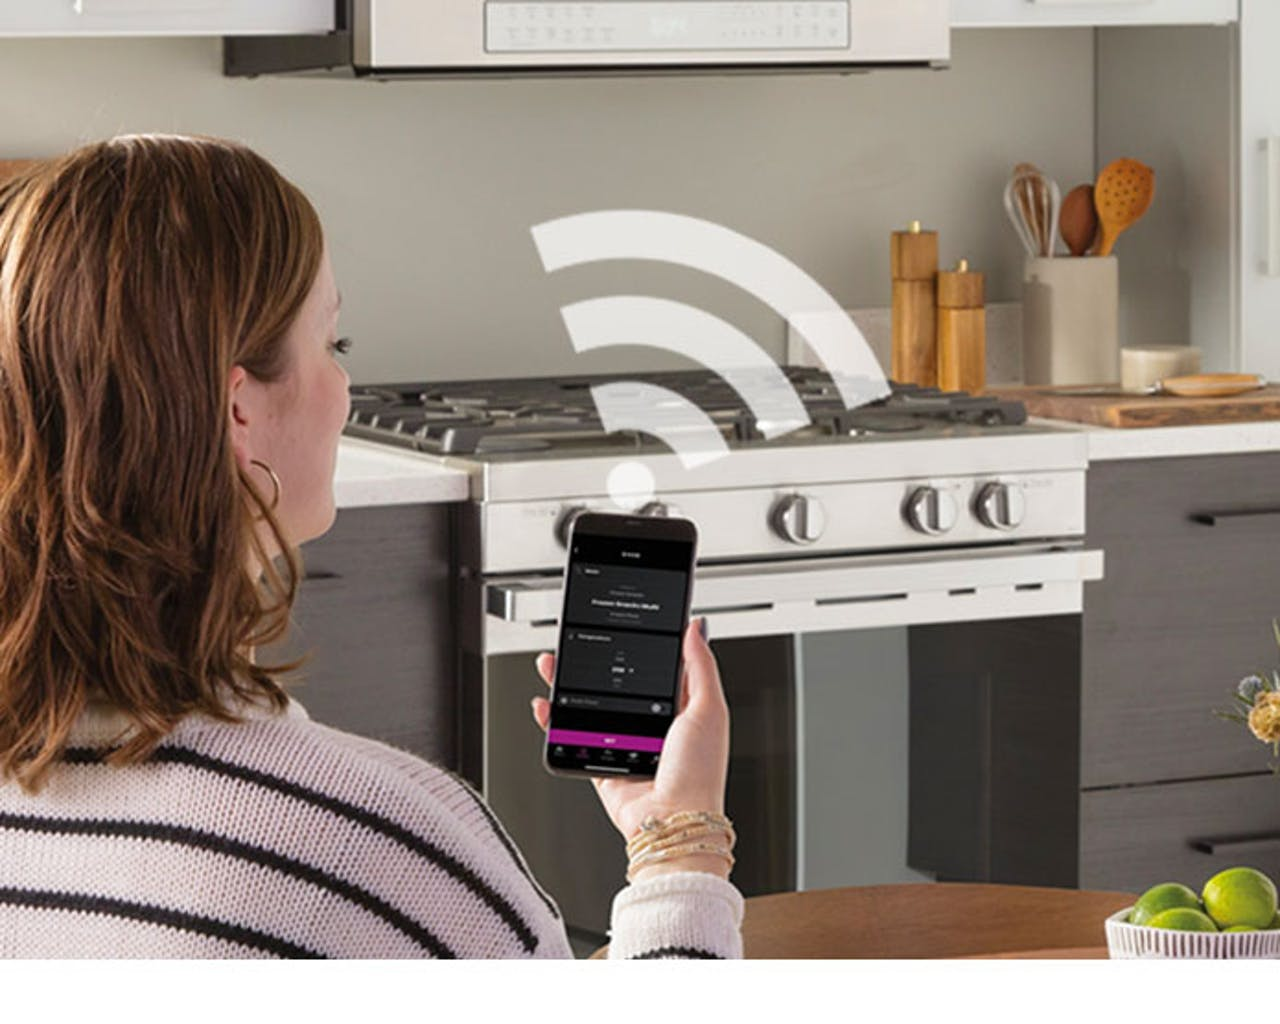 Product support photo of a Haier smart range and microwave in kitchen